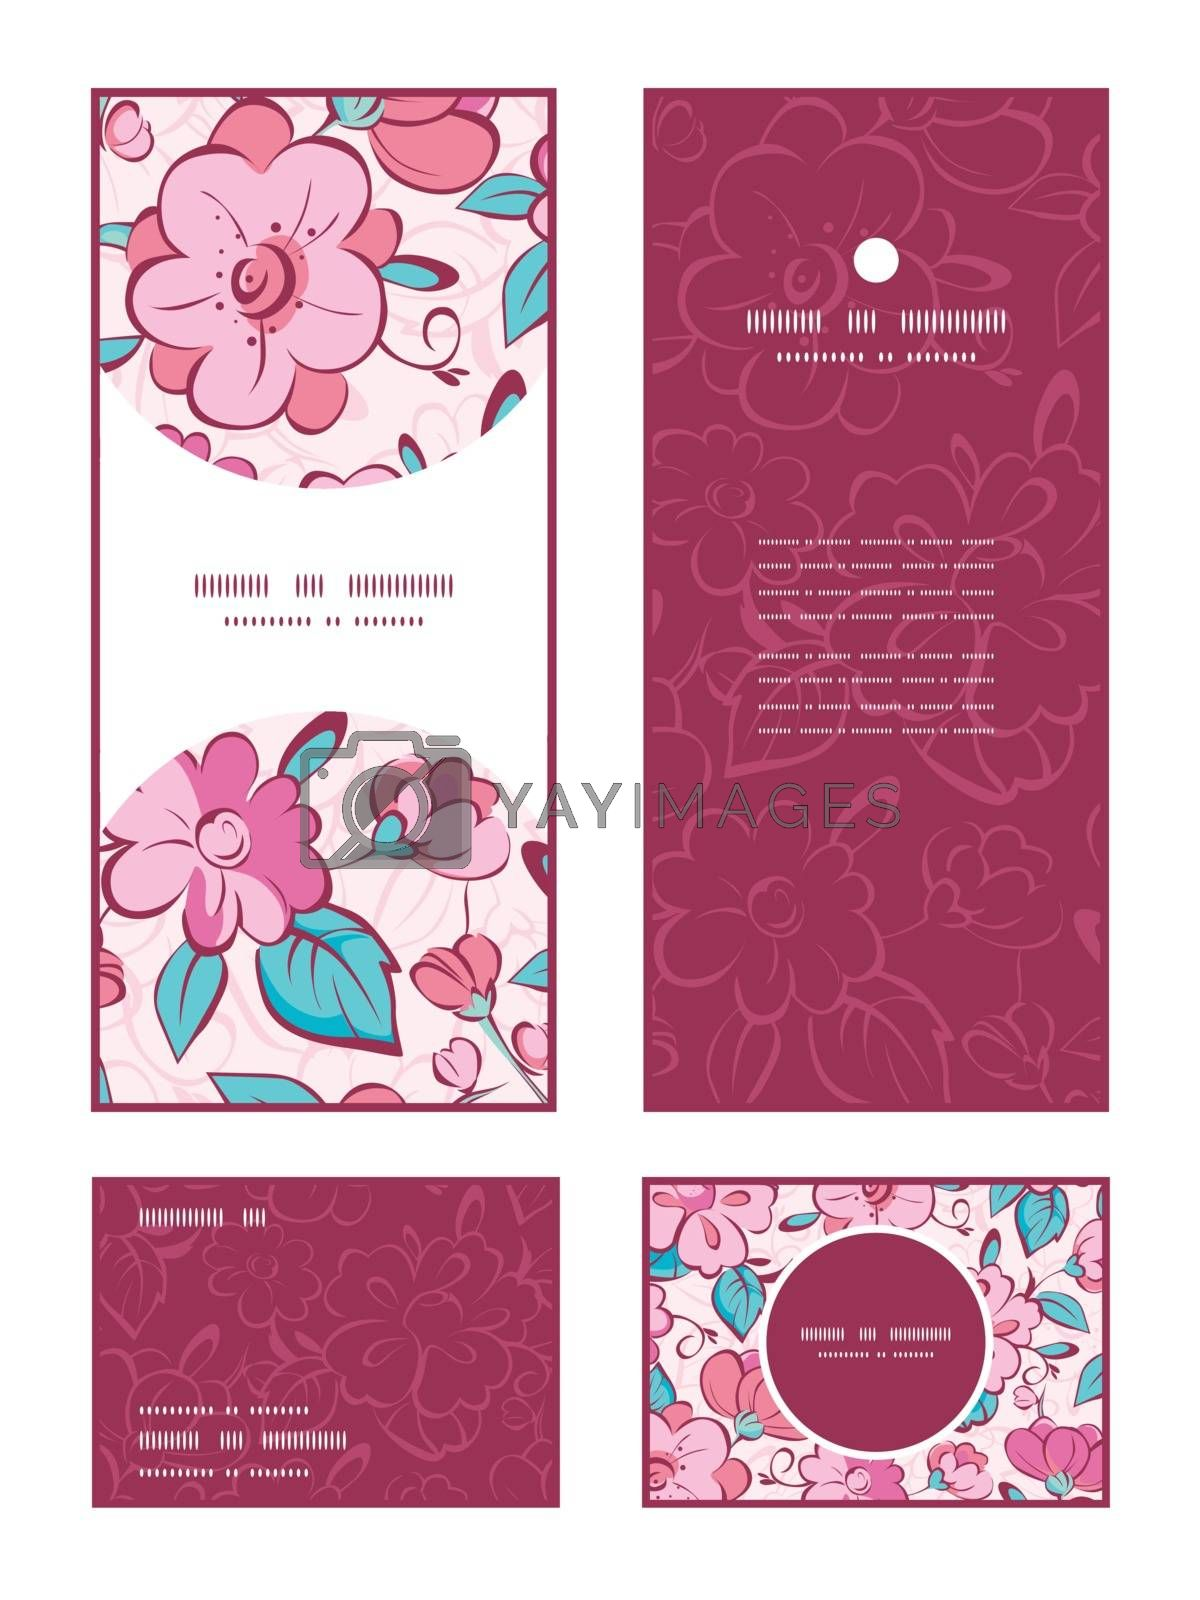 Vector pink blue kimono flowers vertical frame pattern invitation greeting, RSVP and thank you cards set graphic design